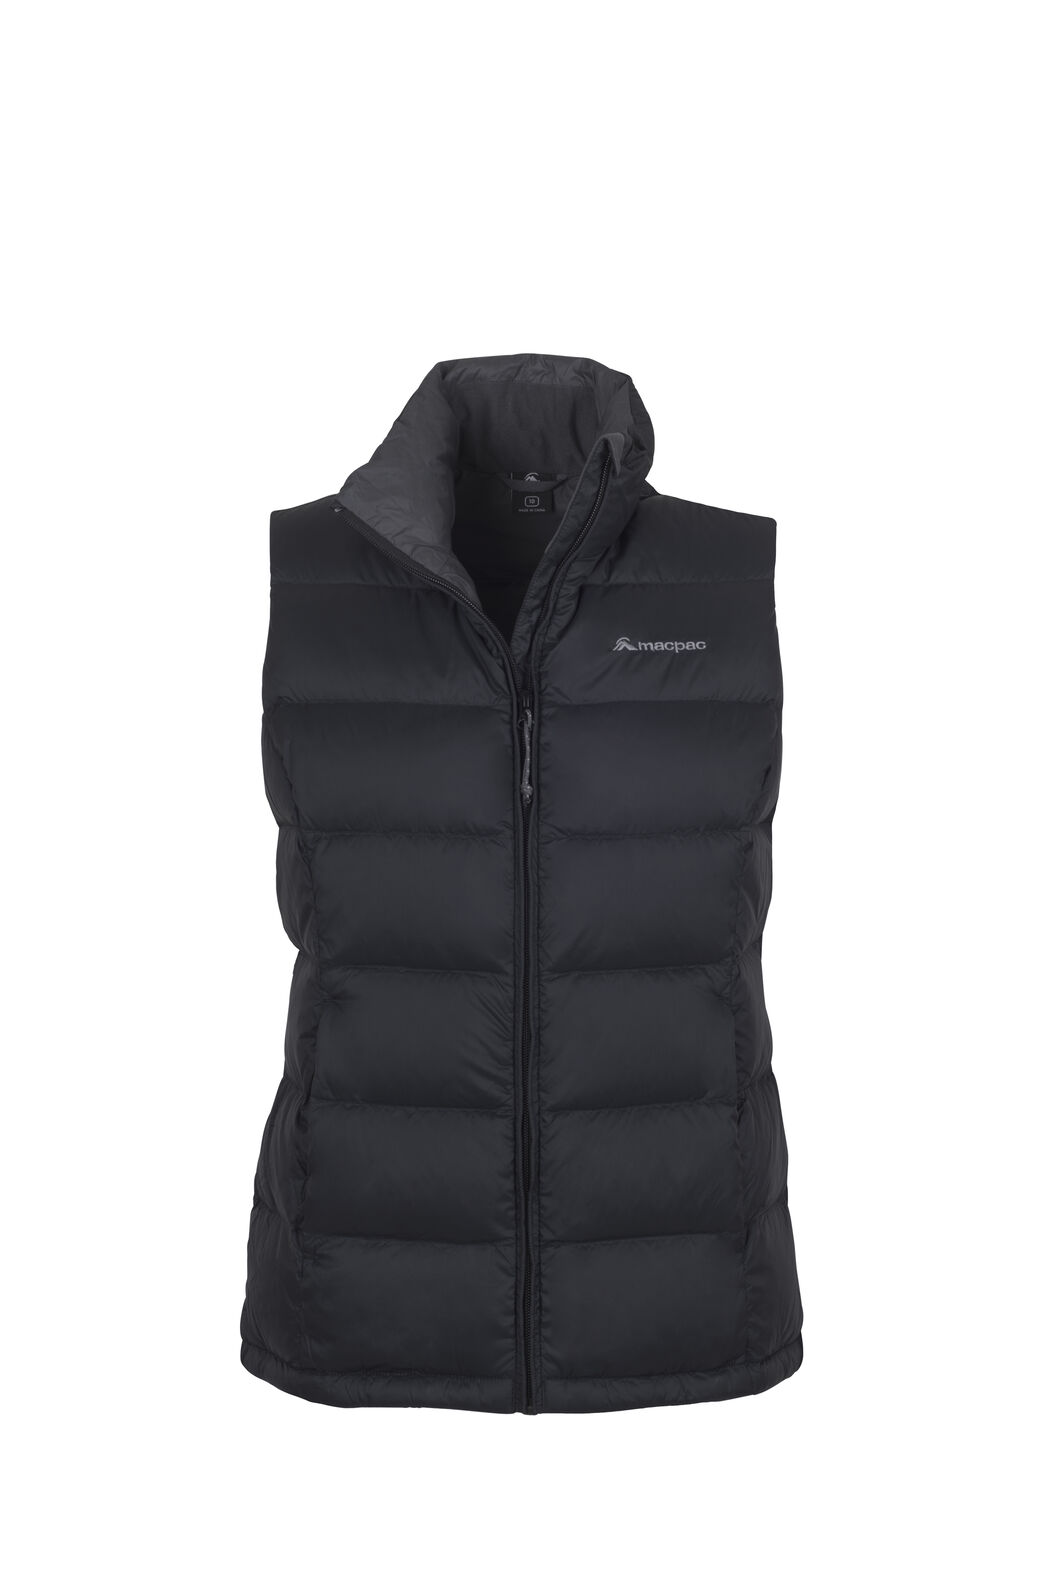 Macpac Halo Down Vest — Women's, Black, hi-res